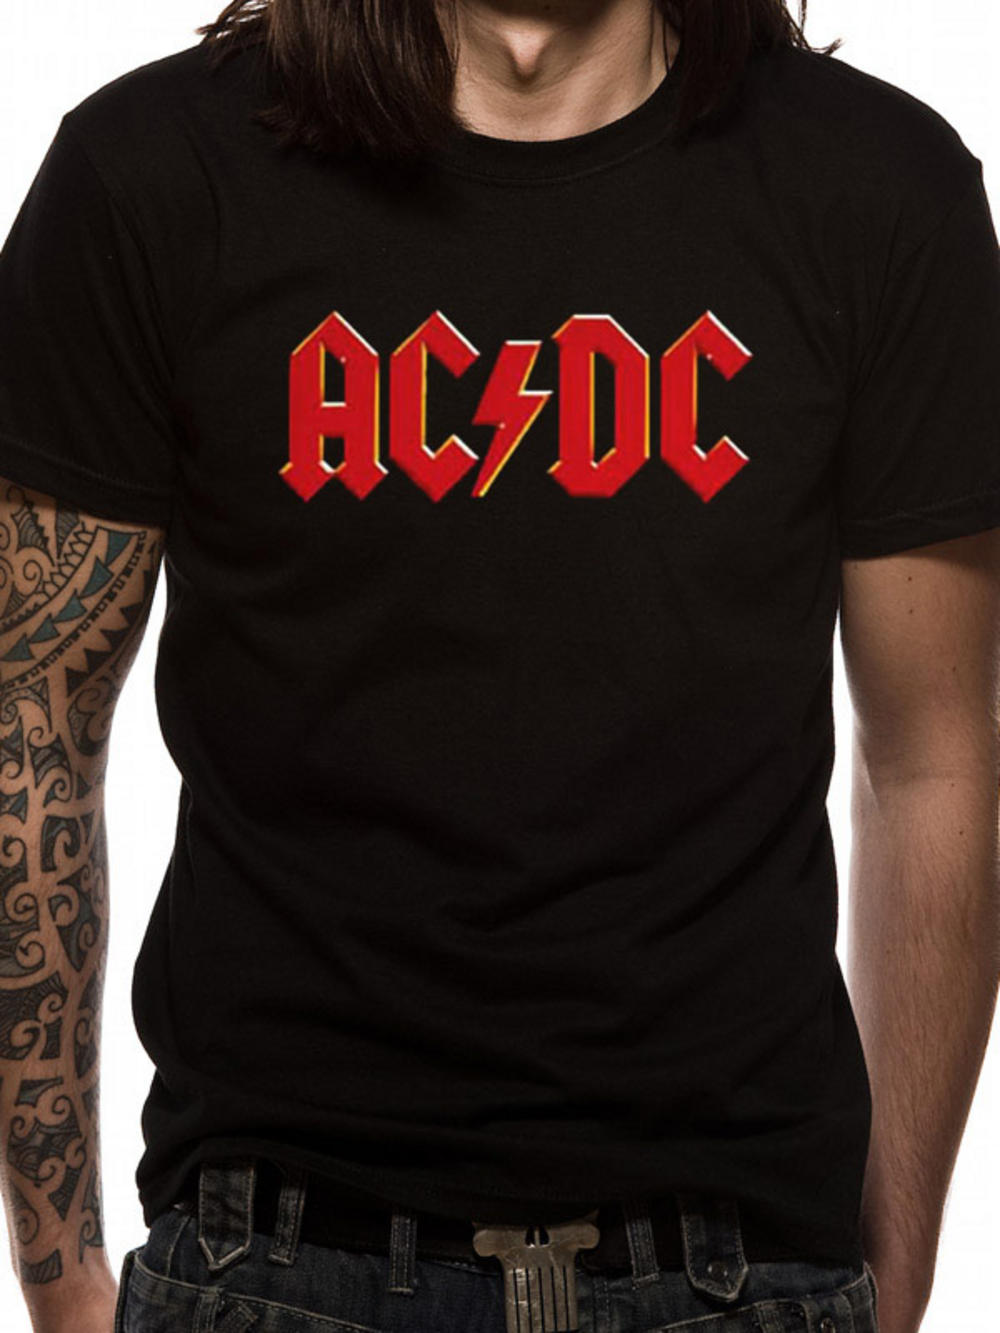 ac dc red logo t shirt tm shop. Black Bedroom Furniture Sets. Home Design Ideas